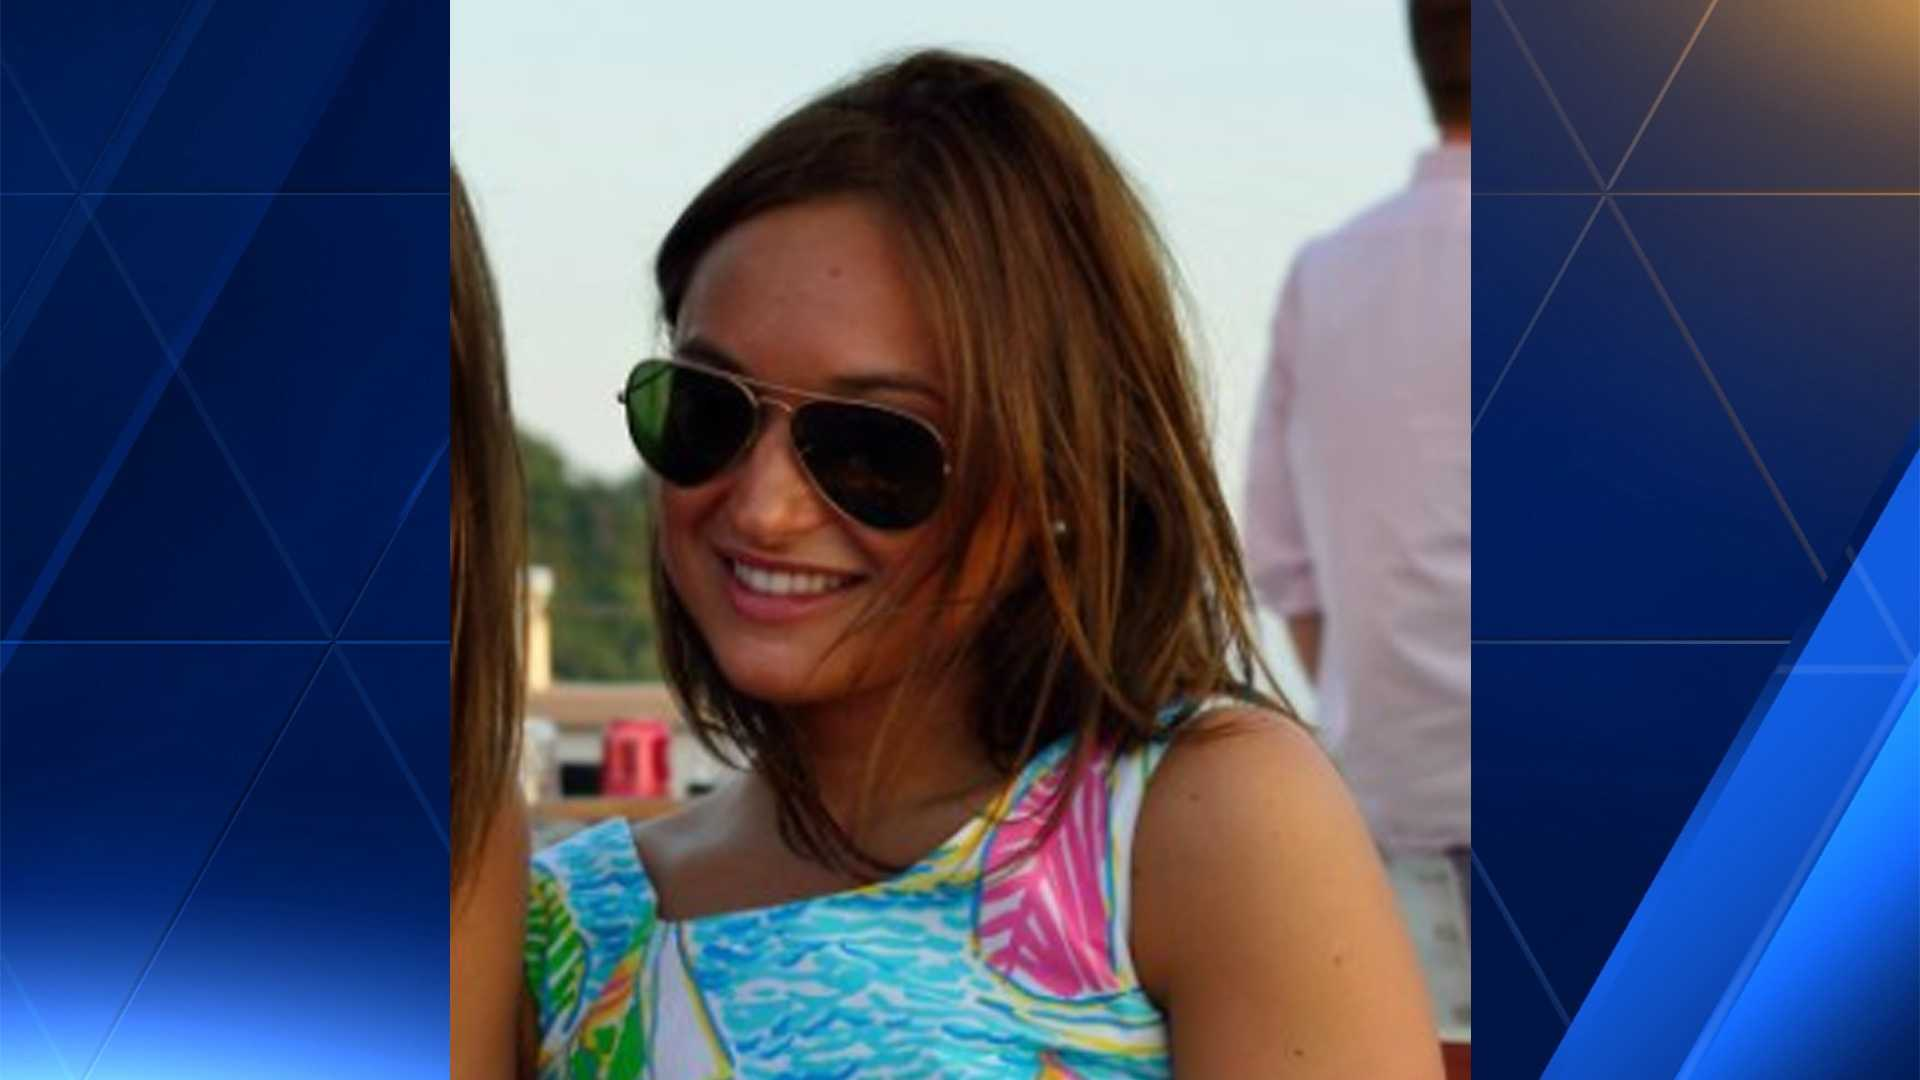 Family Of Murdered Princeton Jogger To Give First Public Statement